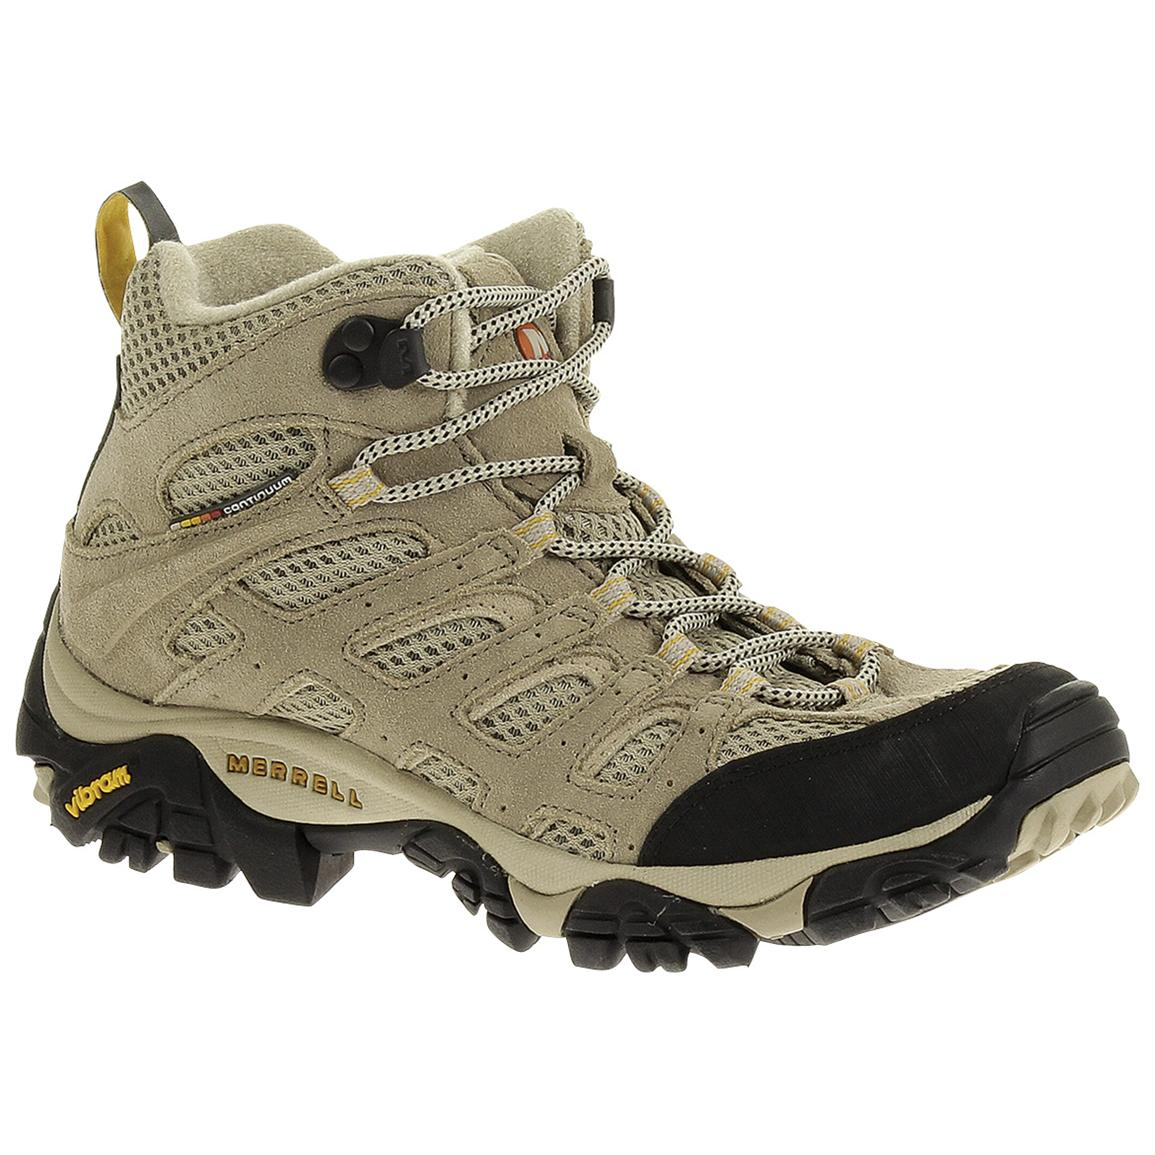 Women's Merrell® Moab Ventilator Mid Hiking Boots, Taupe